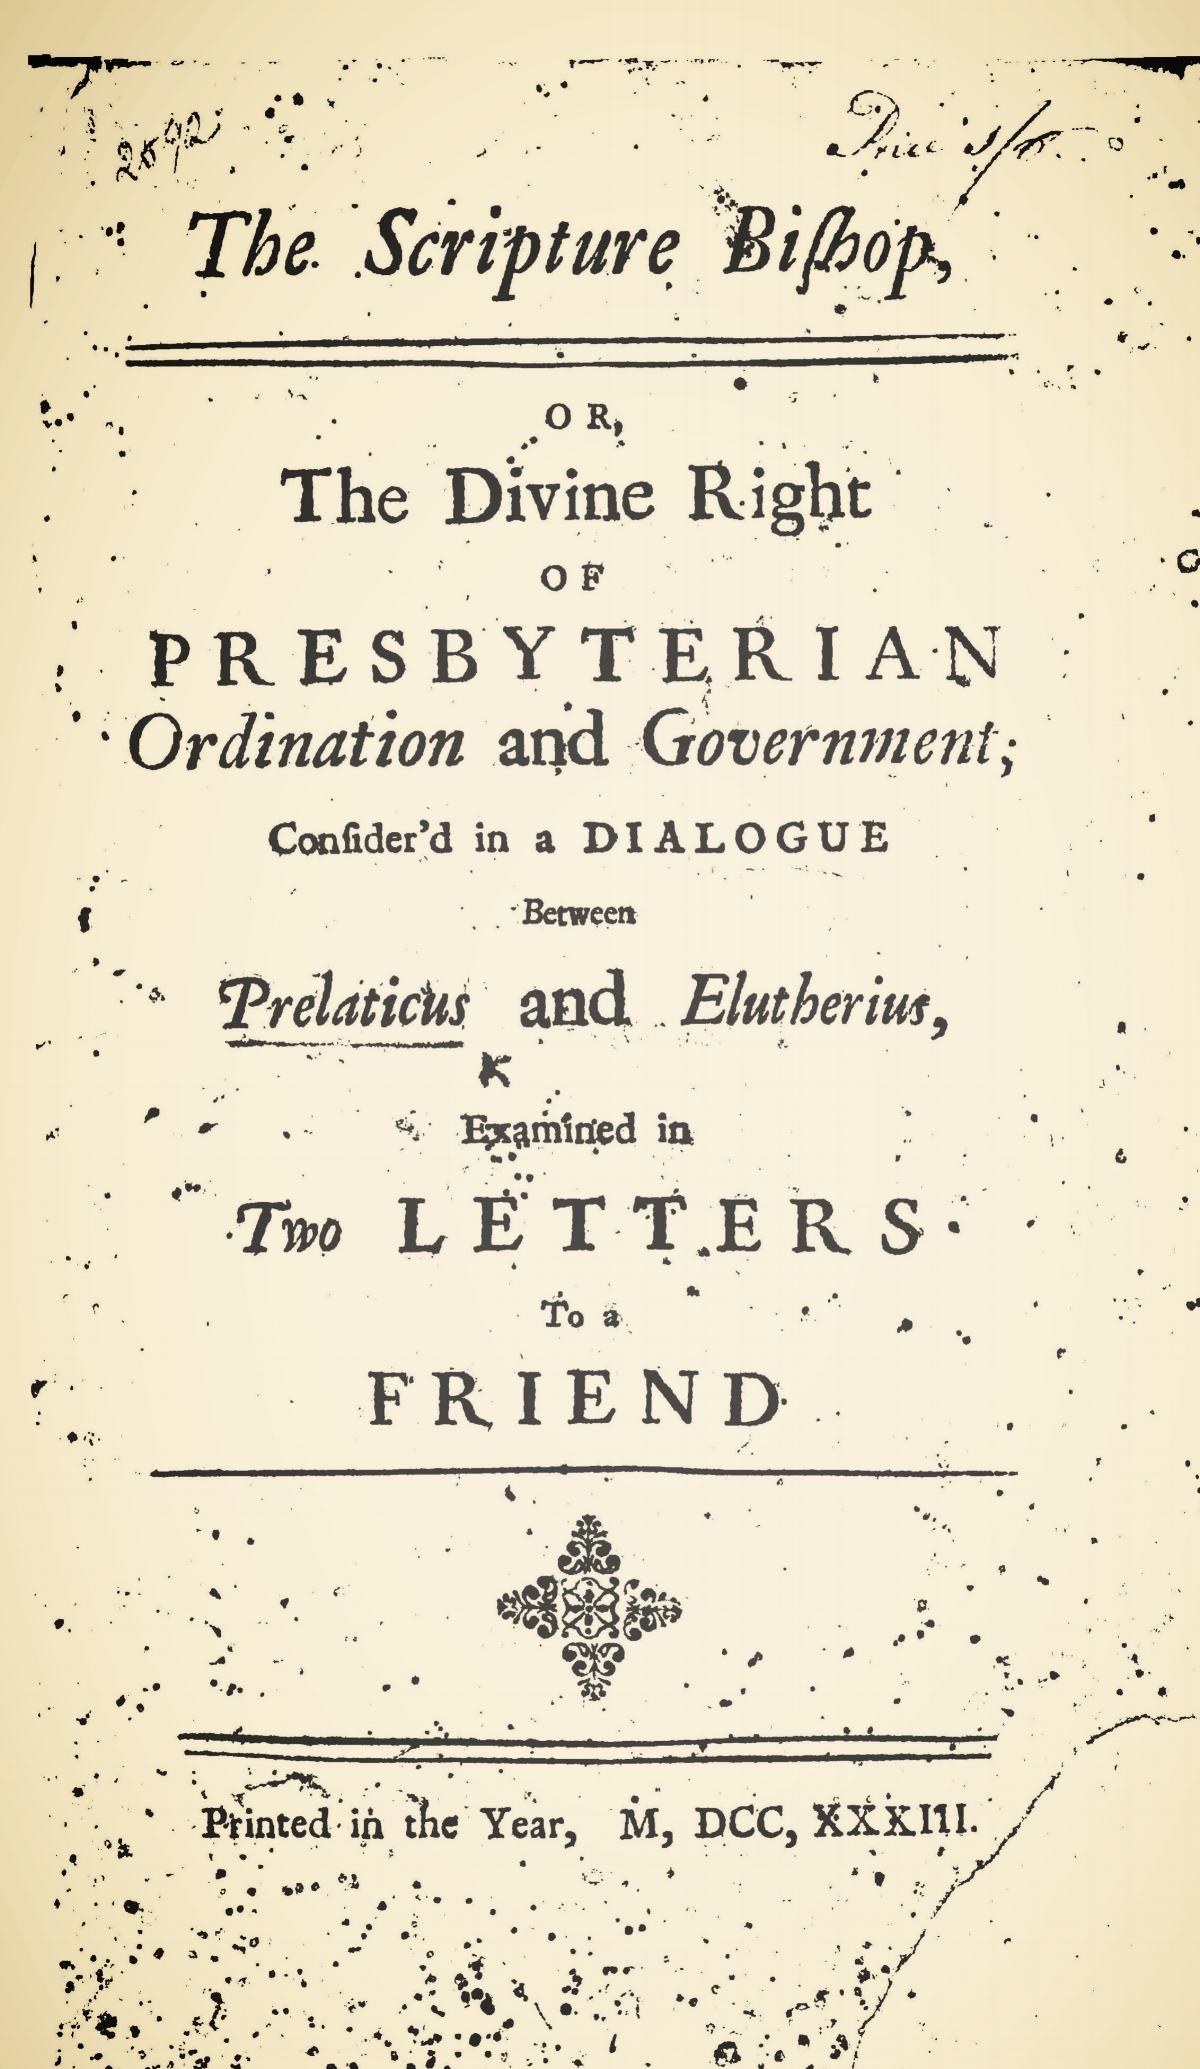 Dickinson, Jonathan, The Scripture Bishop Title Page.jpg